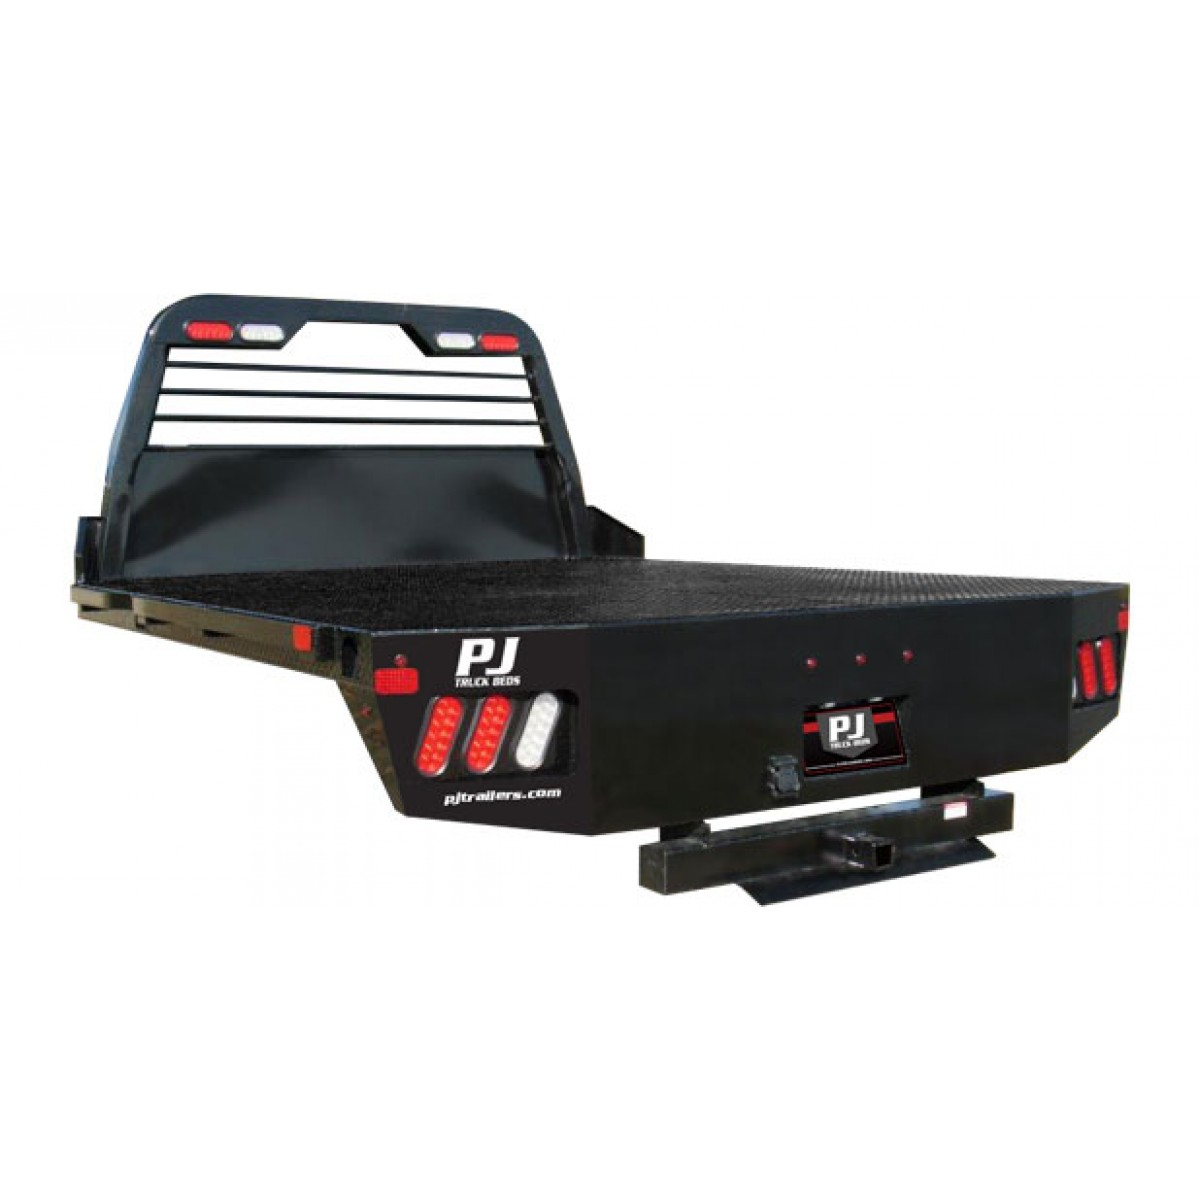 New pj gb flatbed pickup flatbeds bumpers for Bed tech 3000